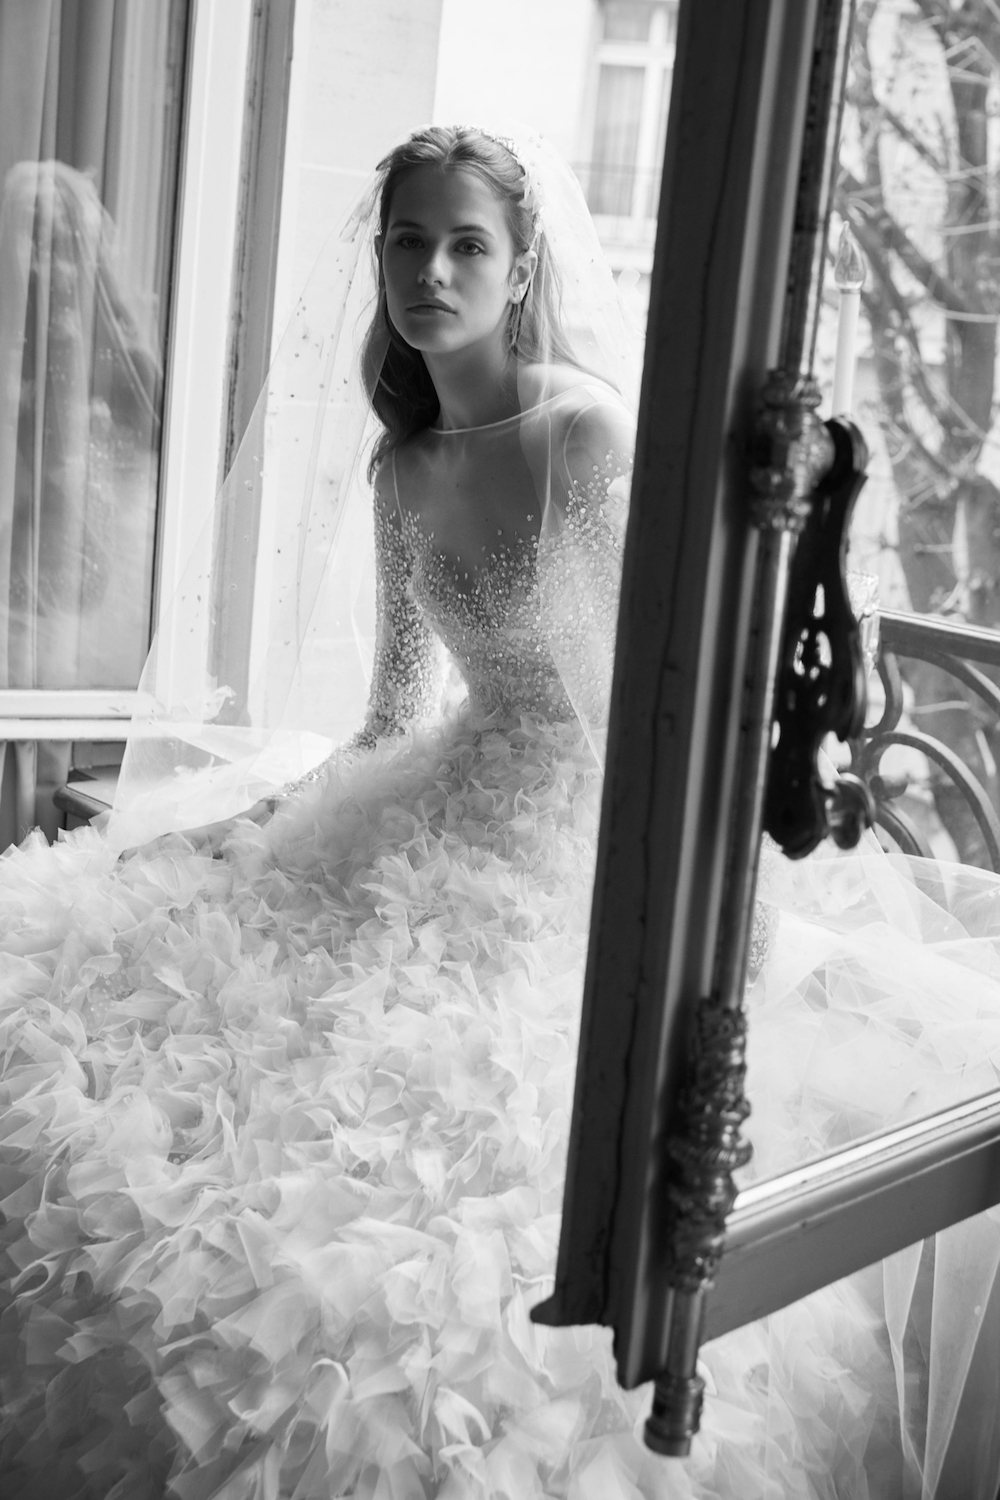 studio-ohlala-wedding-beauty-business-tips-blog-paris-wedding-dress-elie-saab-2.jpg